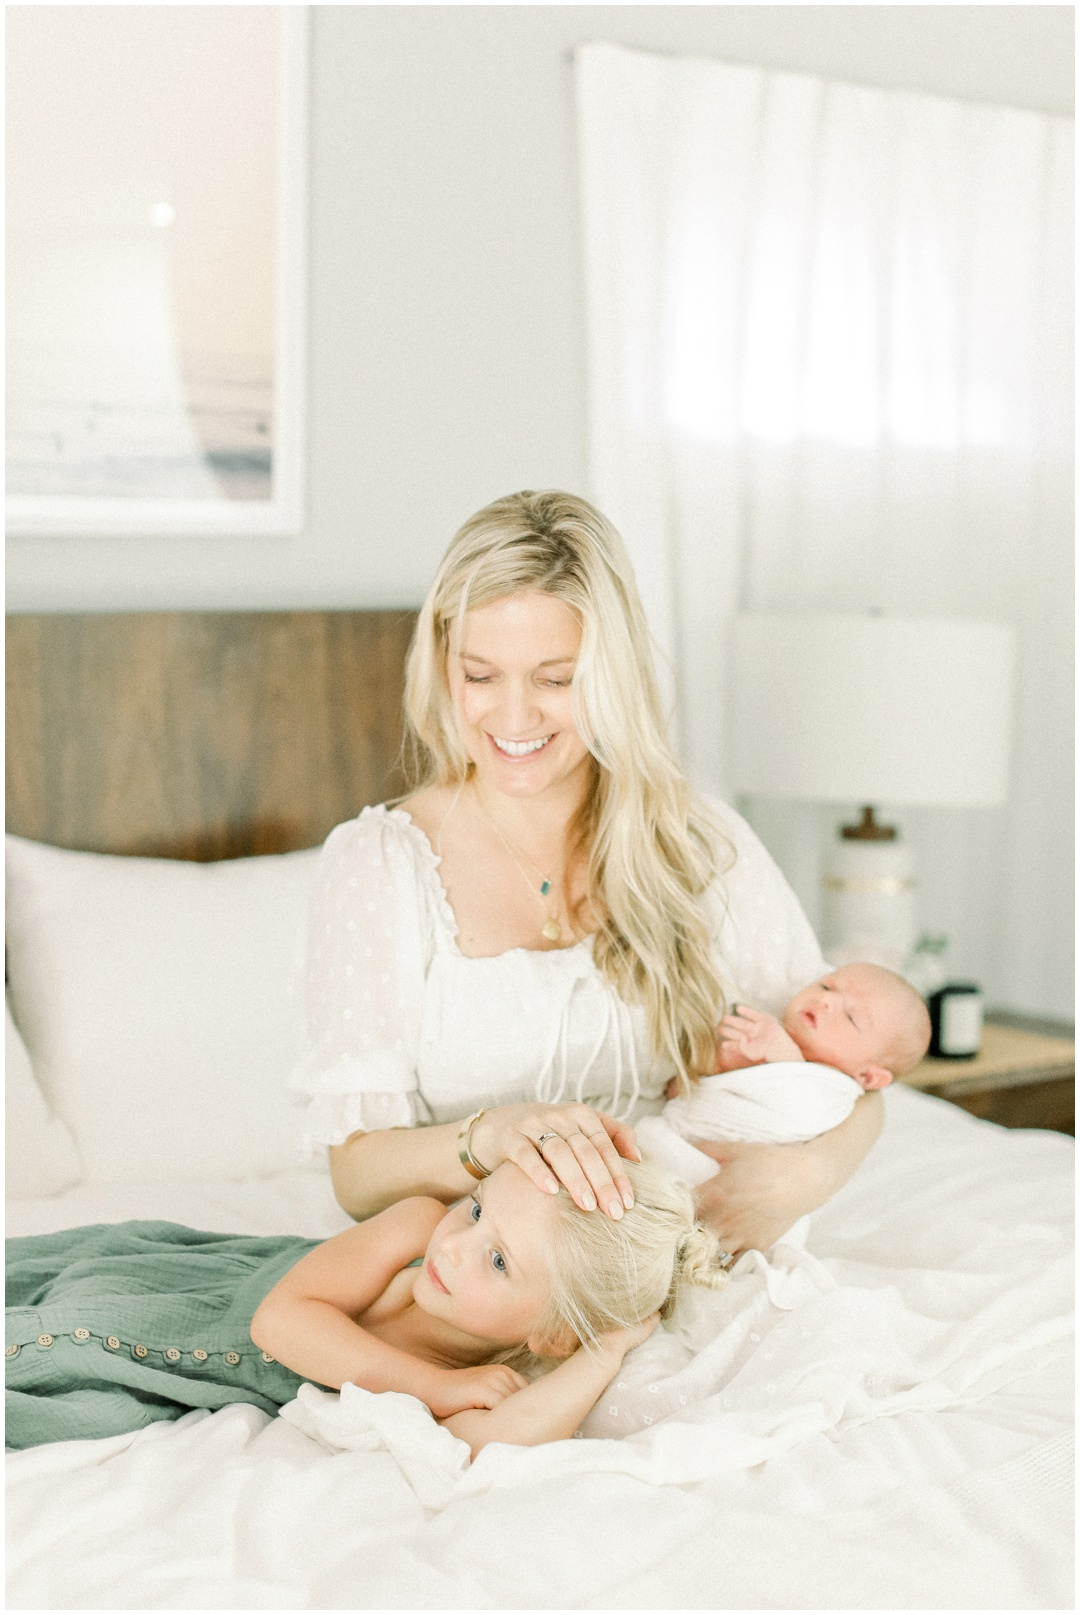 Newport_Beach_Newborn_Light_Airy_Natural_Photographer_Newport_Beach_Photographer_Orange_County_Family_Photographer_Cori_Kleckner_Photography_Newport_Beach_Photographer_Jacobs_Shelly__4061.jpg